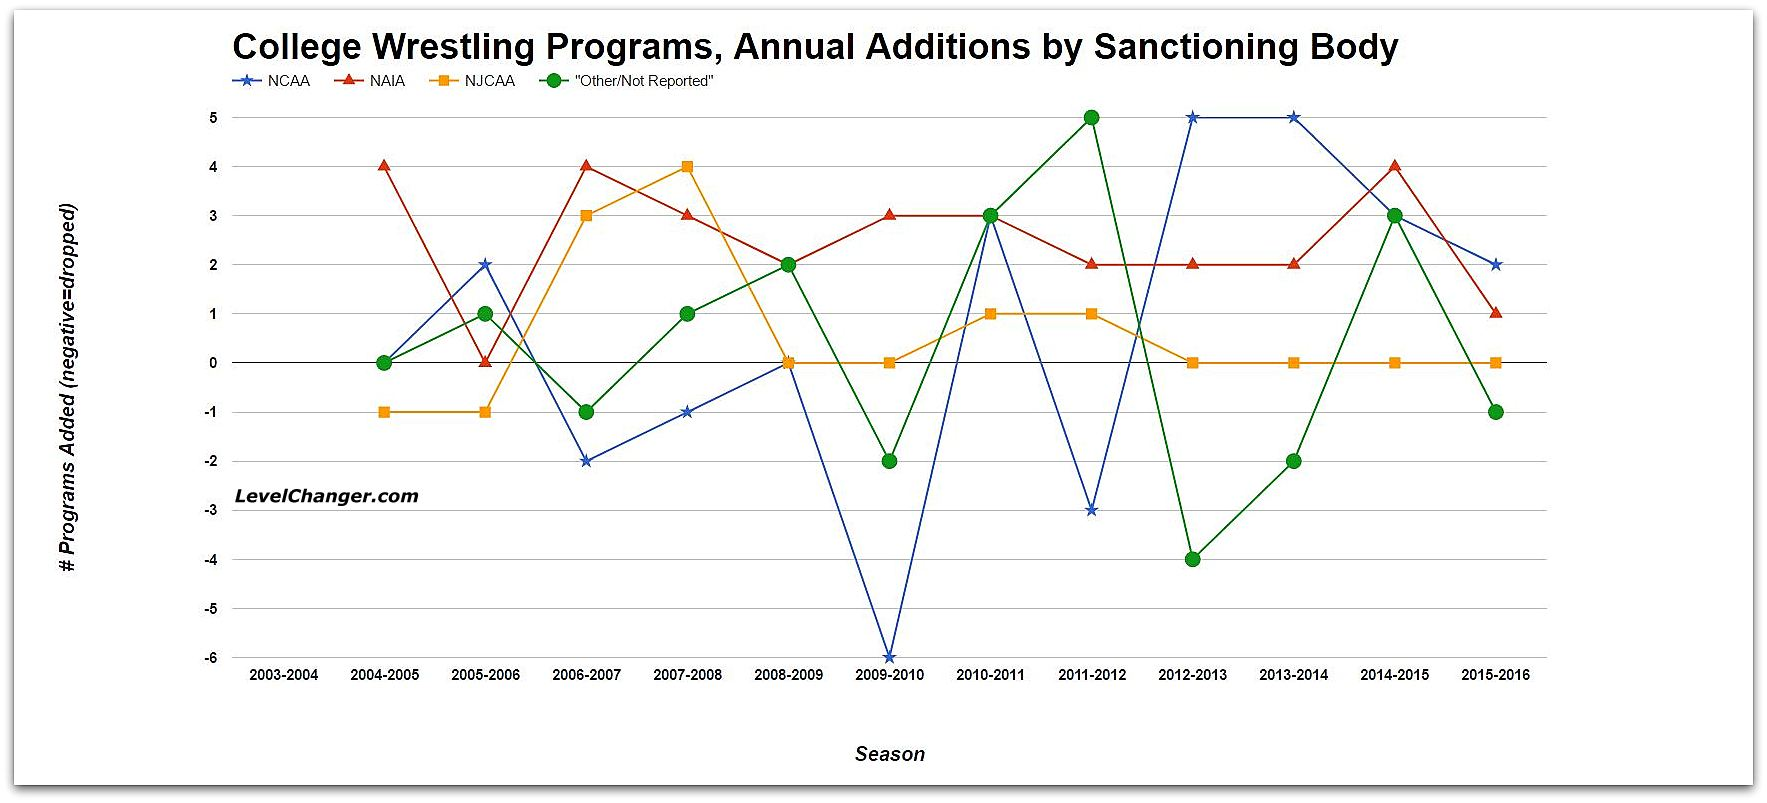 College Wrestling Programs, Annual Additions by Sanctioning Body Source: US Dept. of Education Tap or click to enlarge